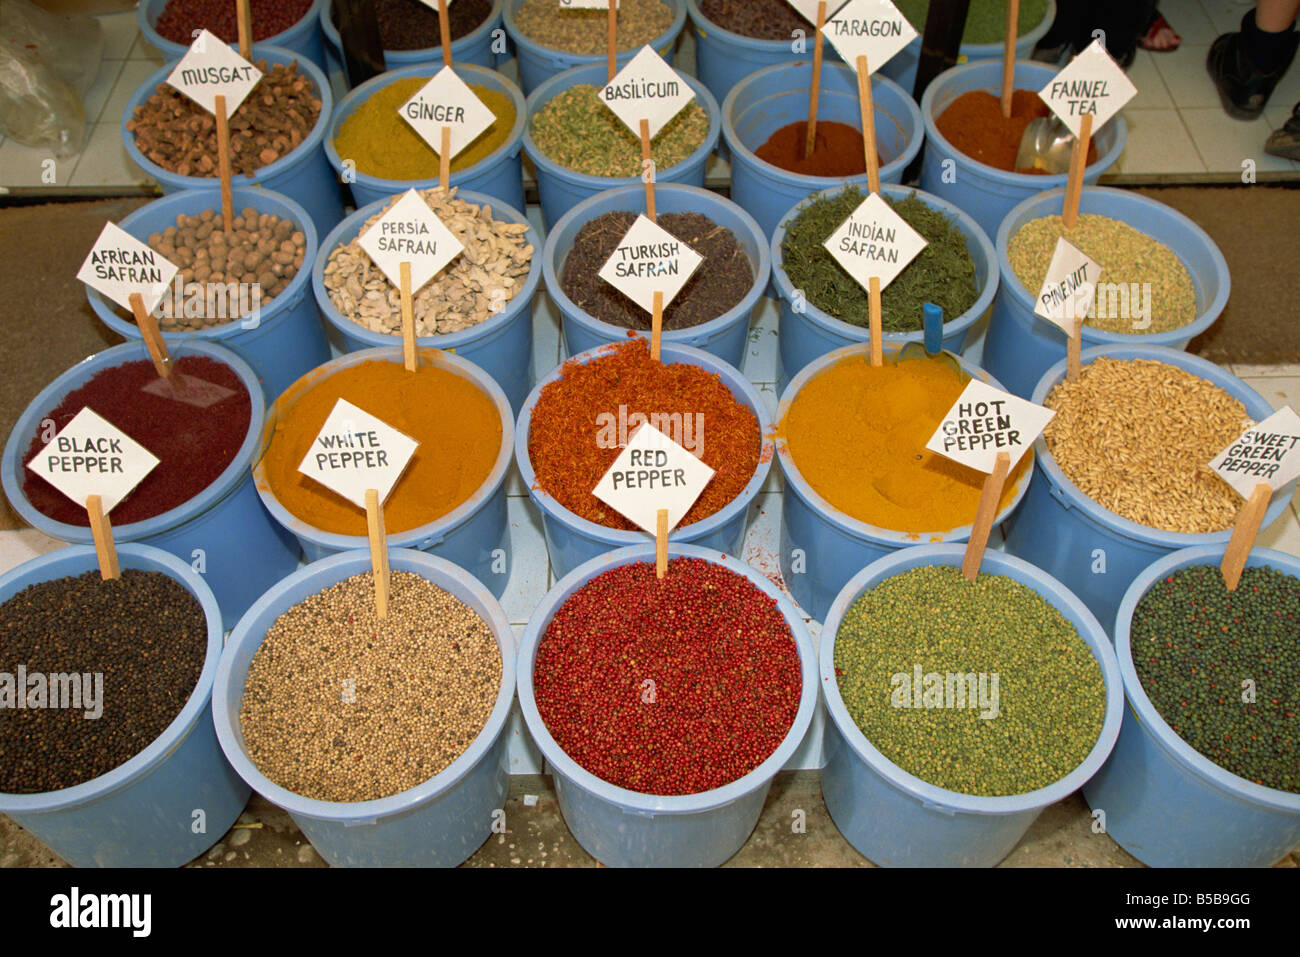 Basilicum Köln Market Stalls And Turkey Stock Photos Market Stalls And Turkey